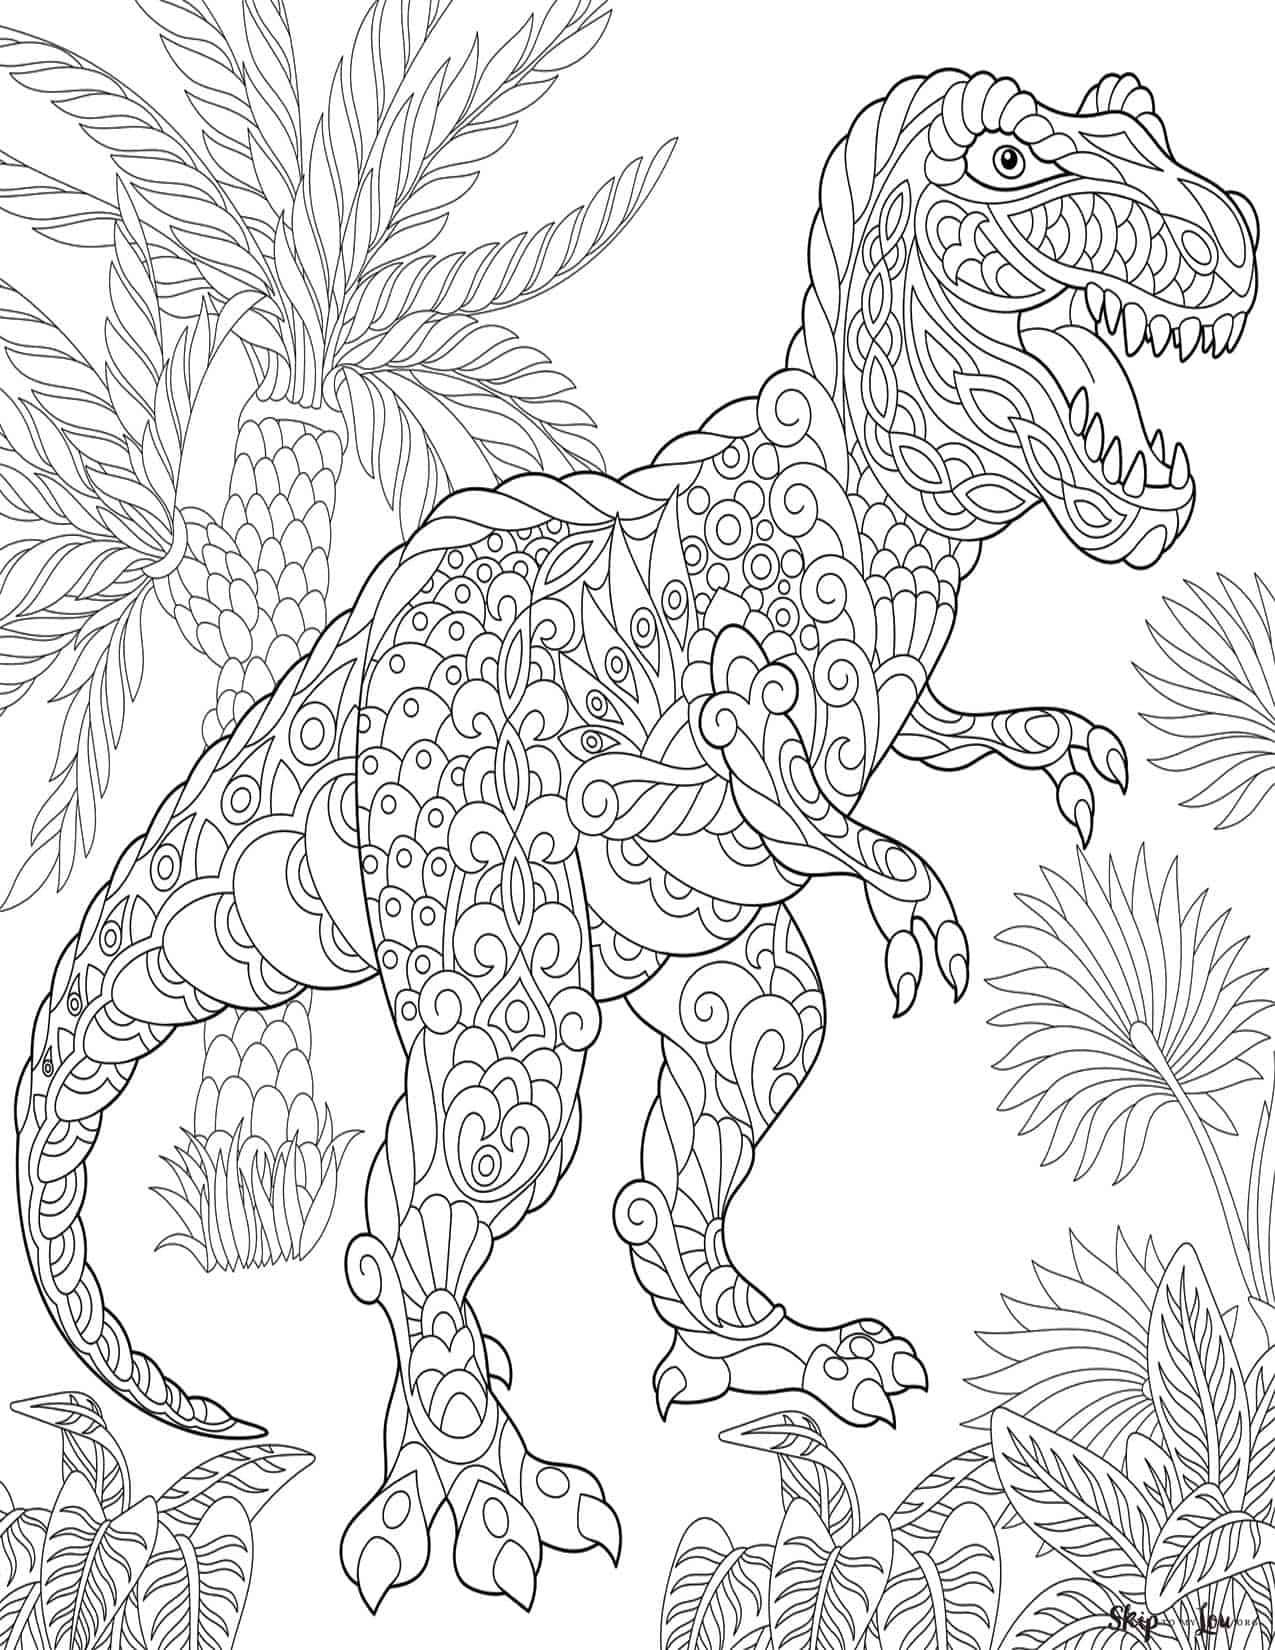 Dinosaur Coloring Pages | Skip To My Lou